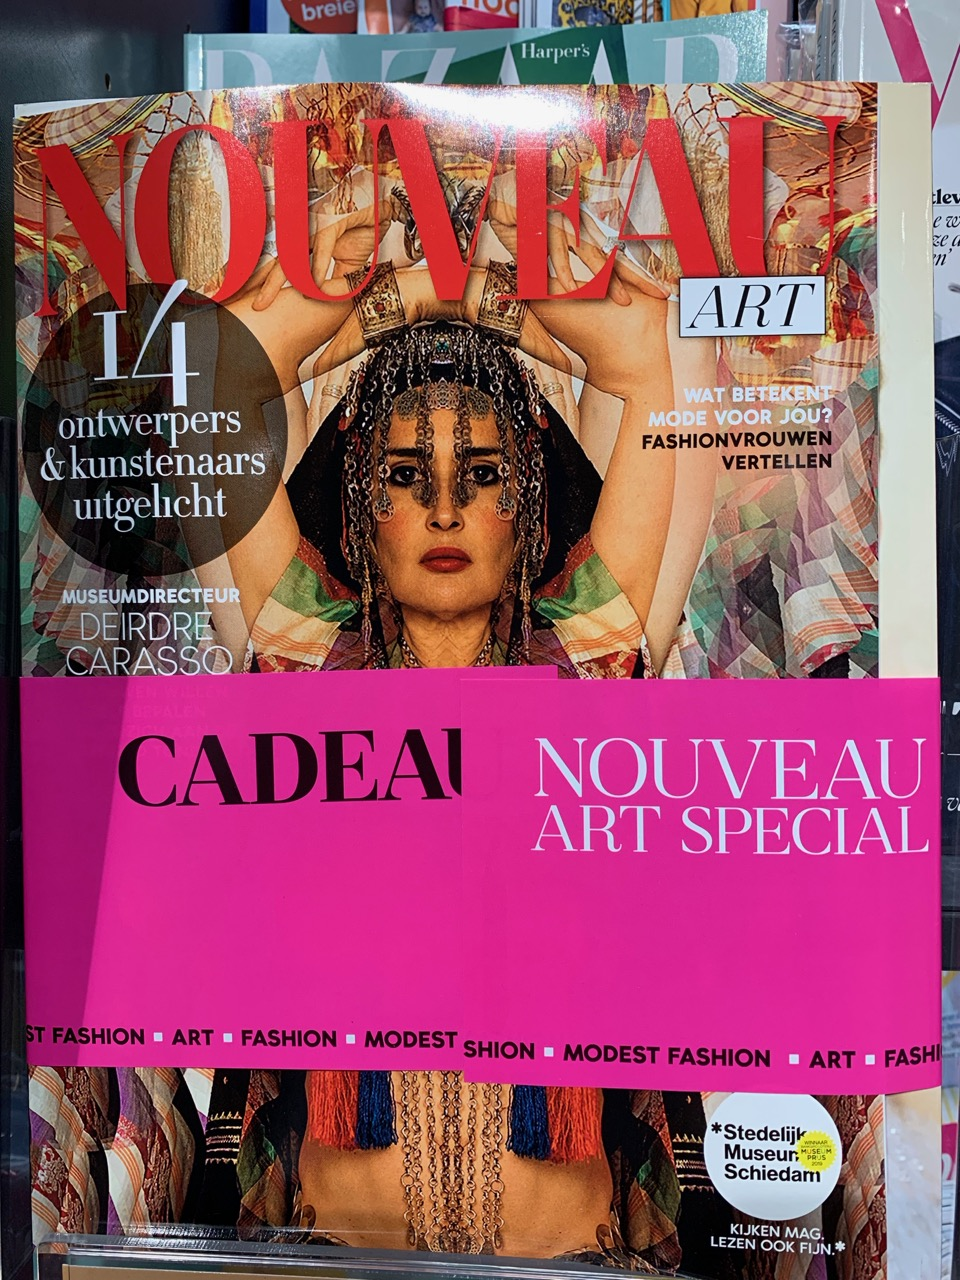 Modest Fashion Nouveau Art special in de winkel!